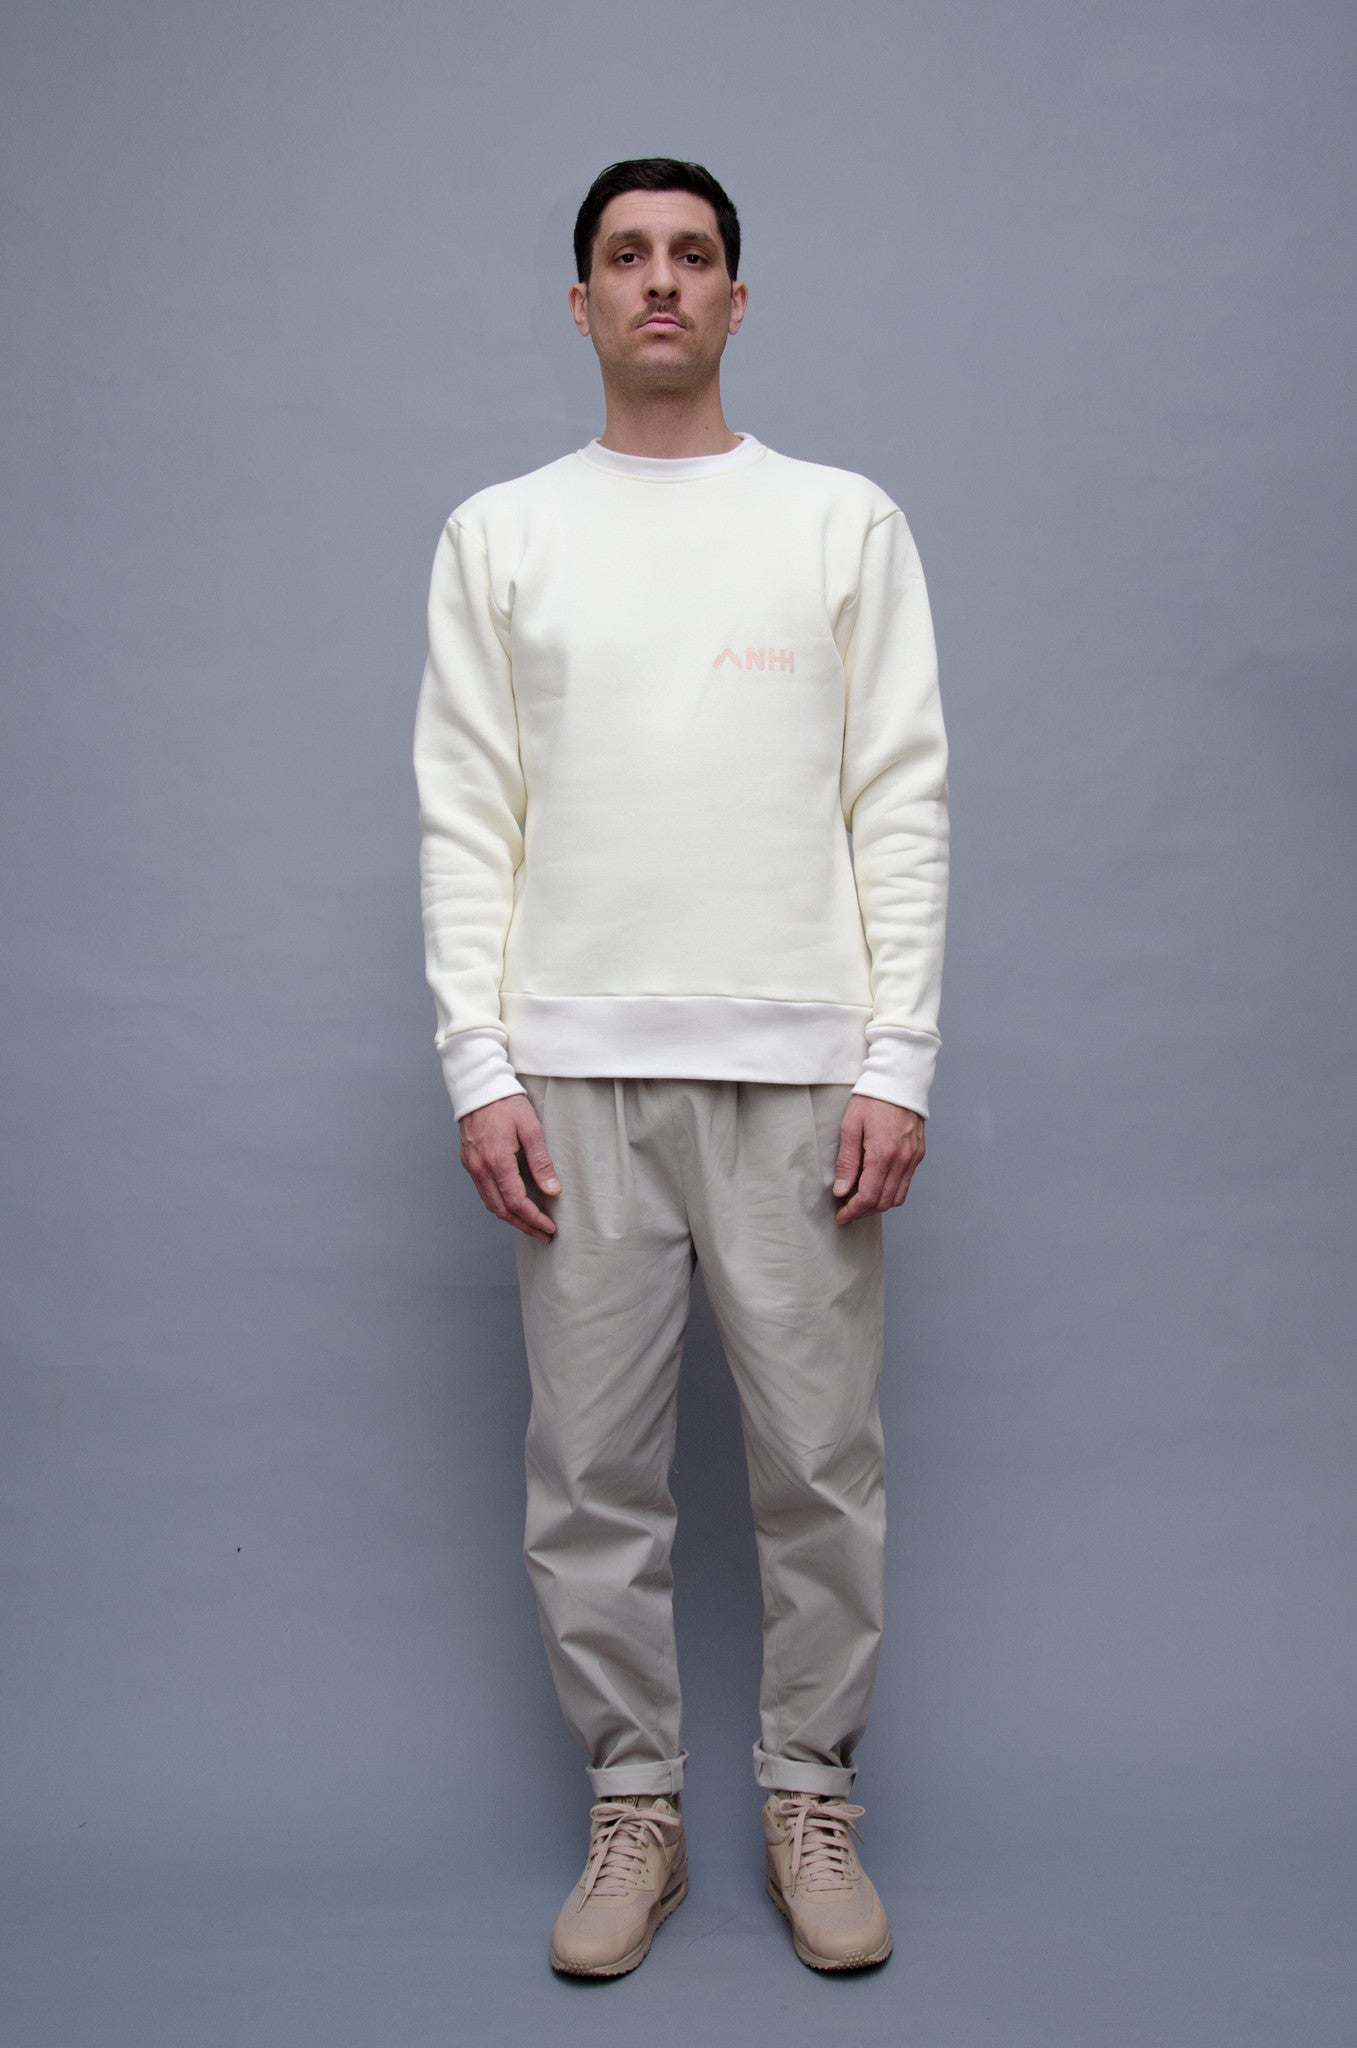 The North Hill Revolte Crewneck is a made in France sweatshirt